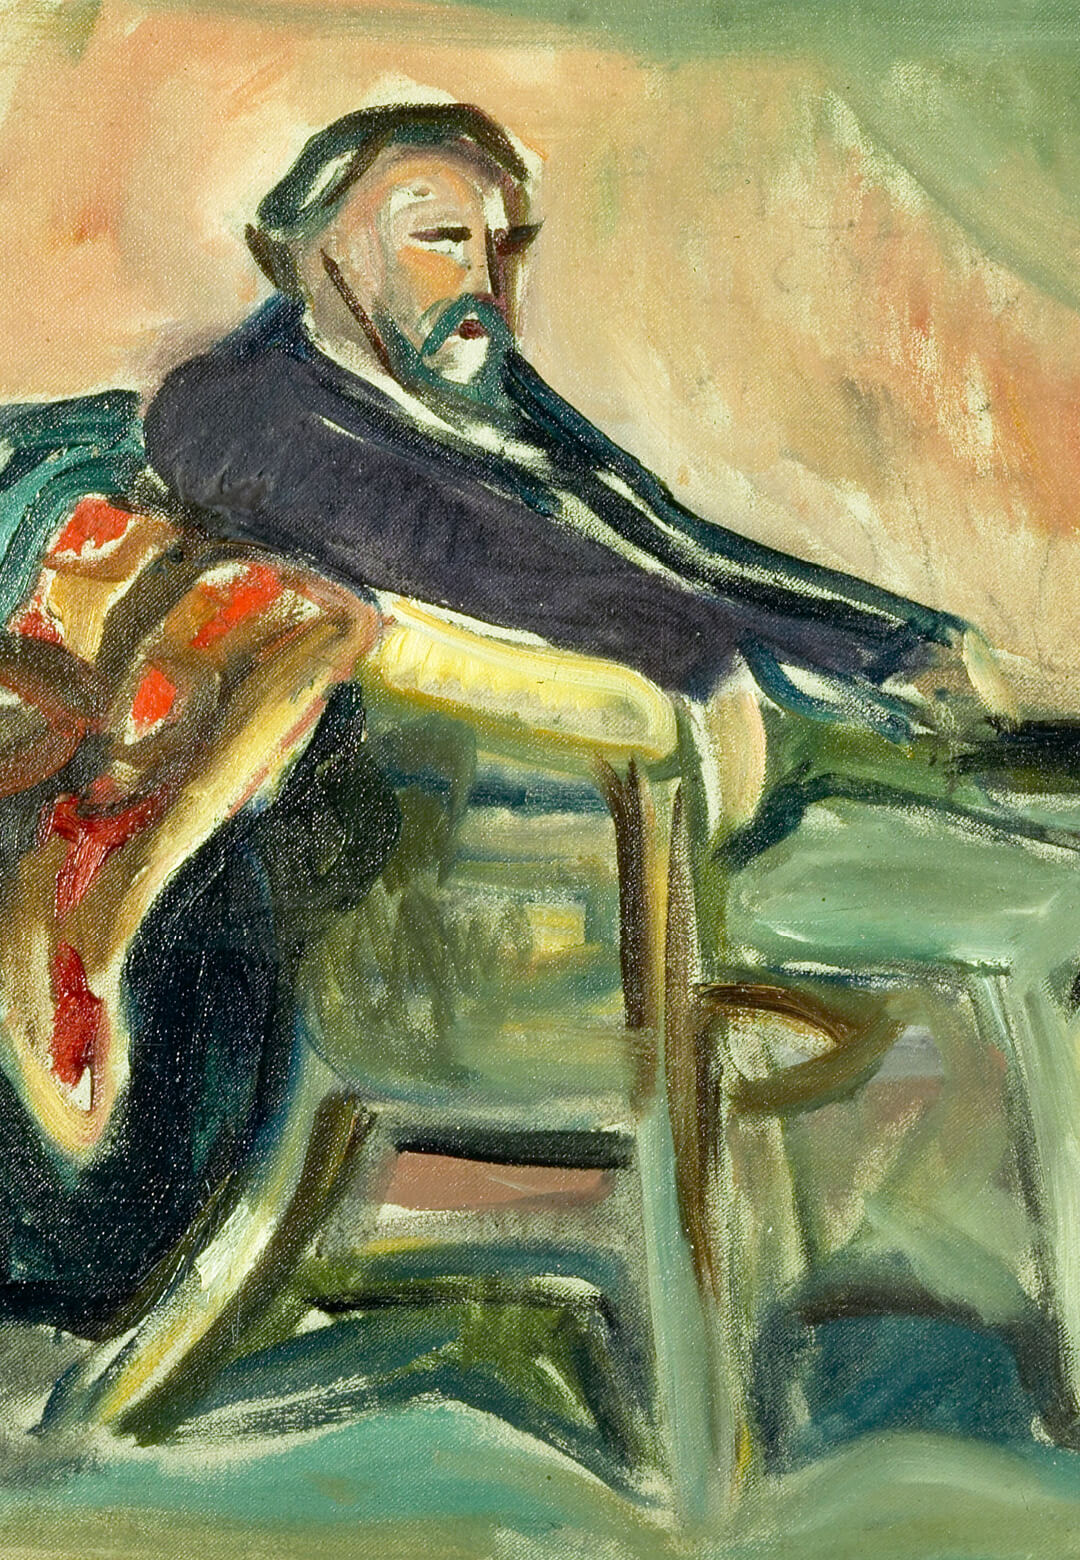 'Self-Portrait with the Spanish Flu' owned by Museum für Kunst und Kulturgeschichte der Hansestadt Lübeck | Munchmuseet | Edvard Munch | STIRworld